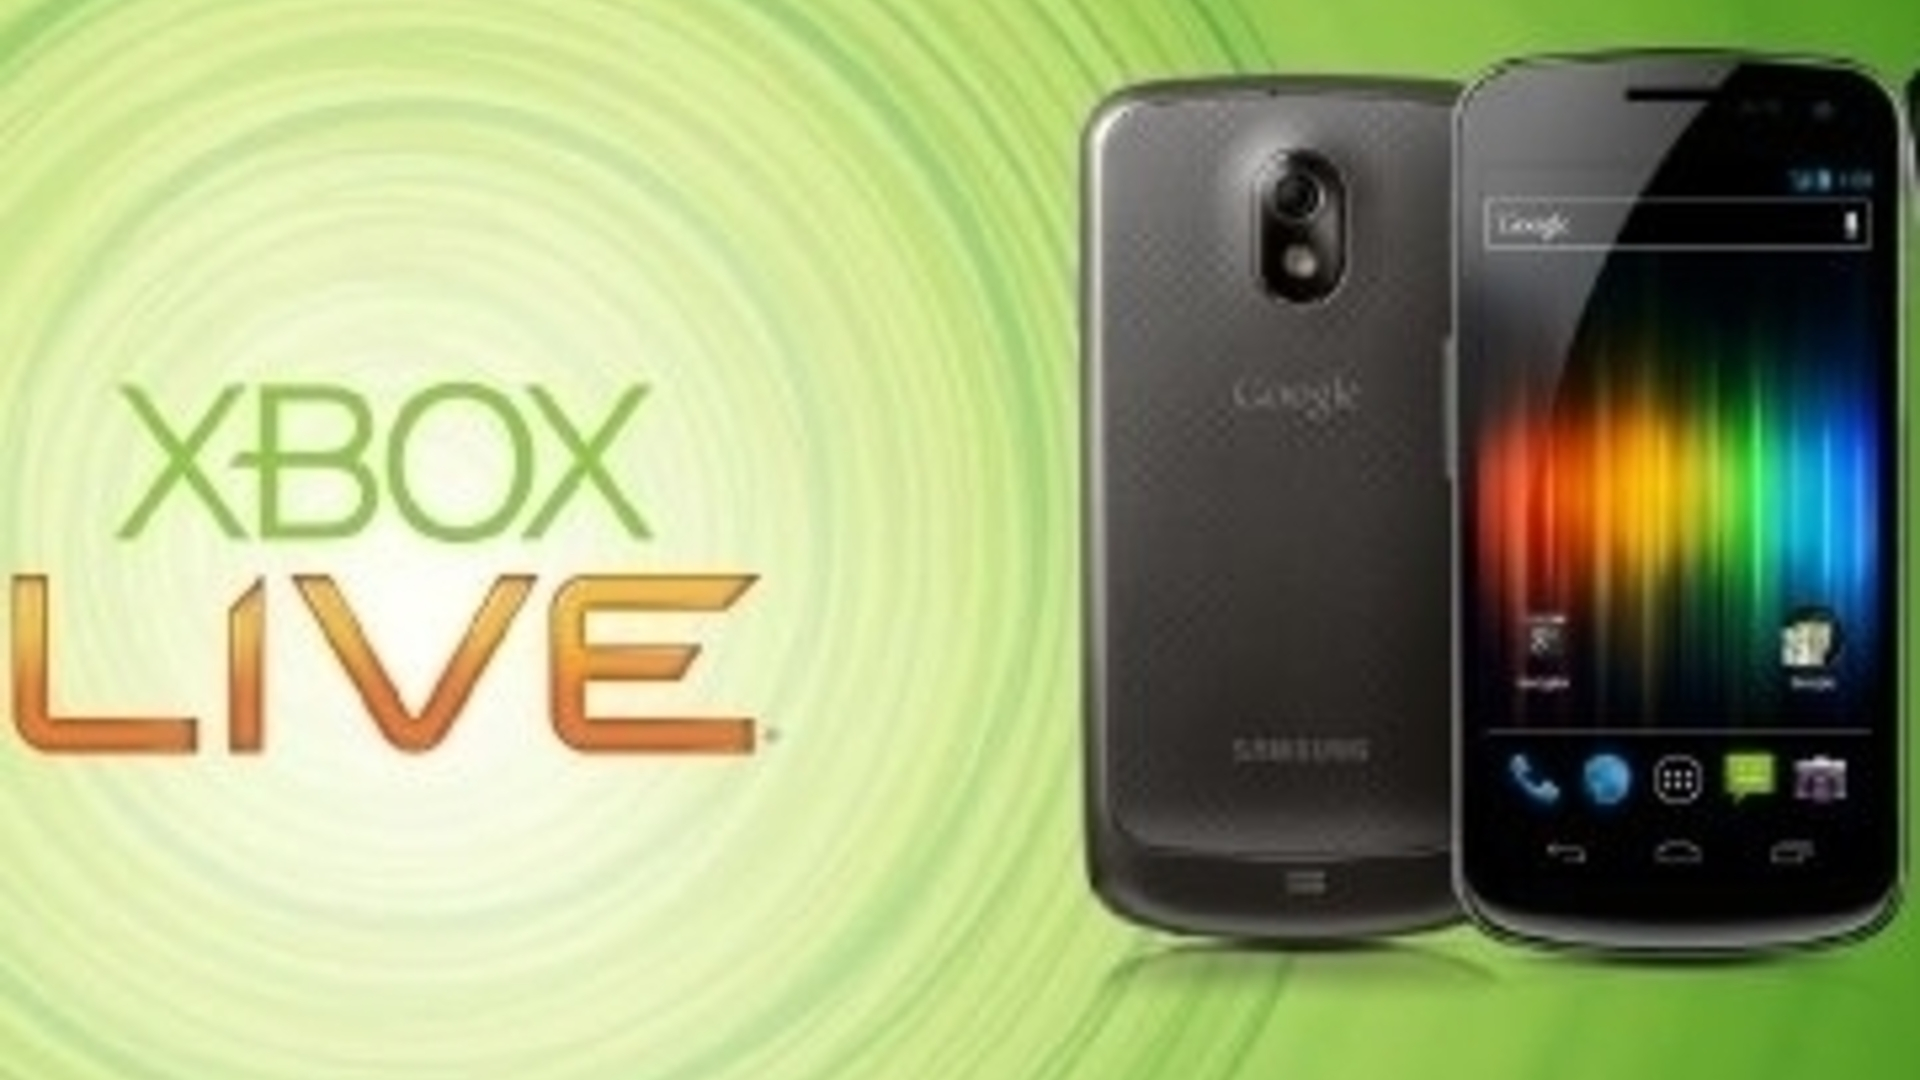 Microsoft aims to bring Xbox Live to iOS, Android - rumour